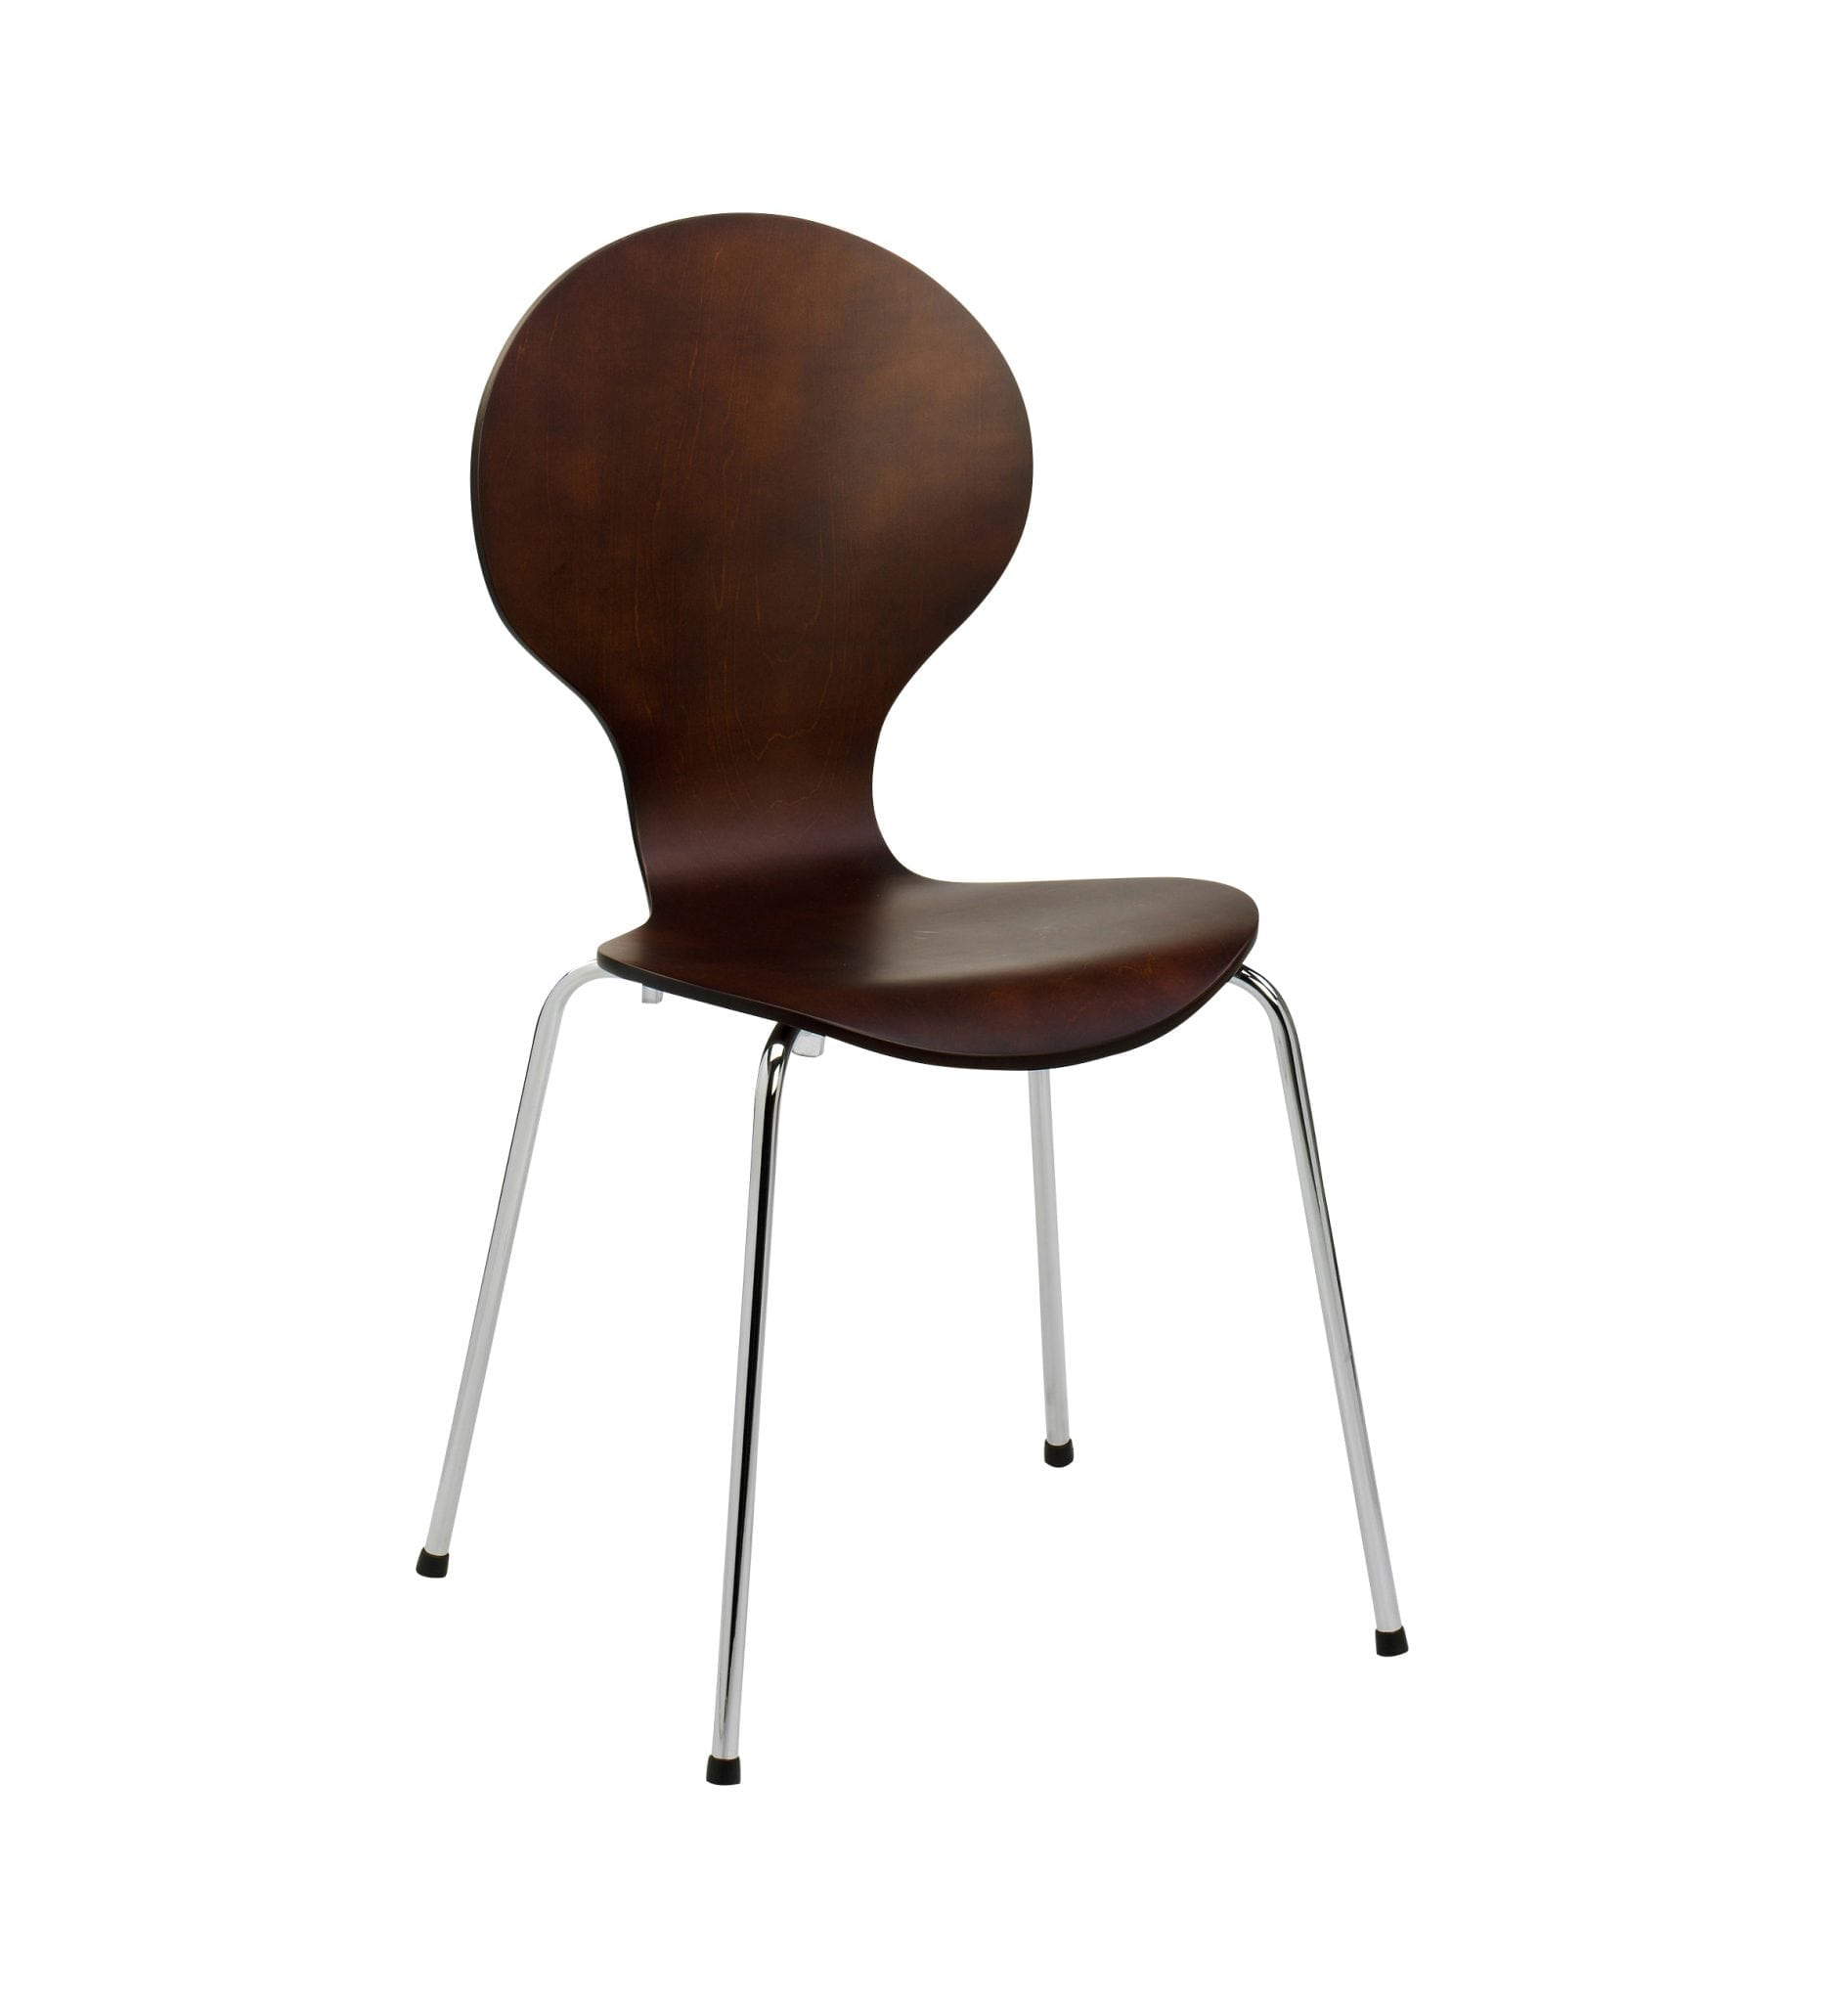 Athena - AT1W - Modern wenge wooden stackable chair for cafes, bars and restaurants – from Summit Chairs